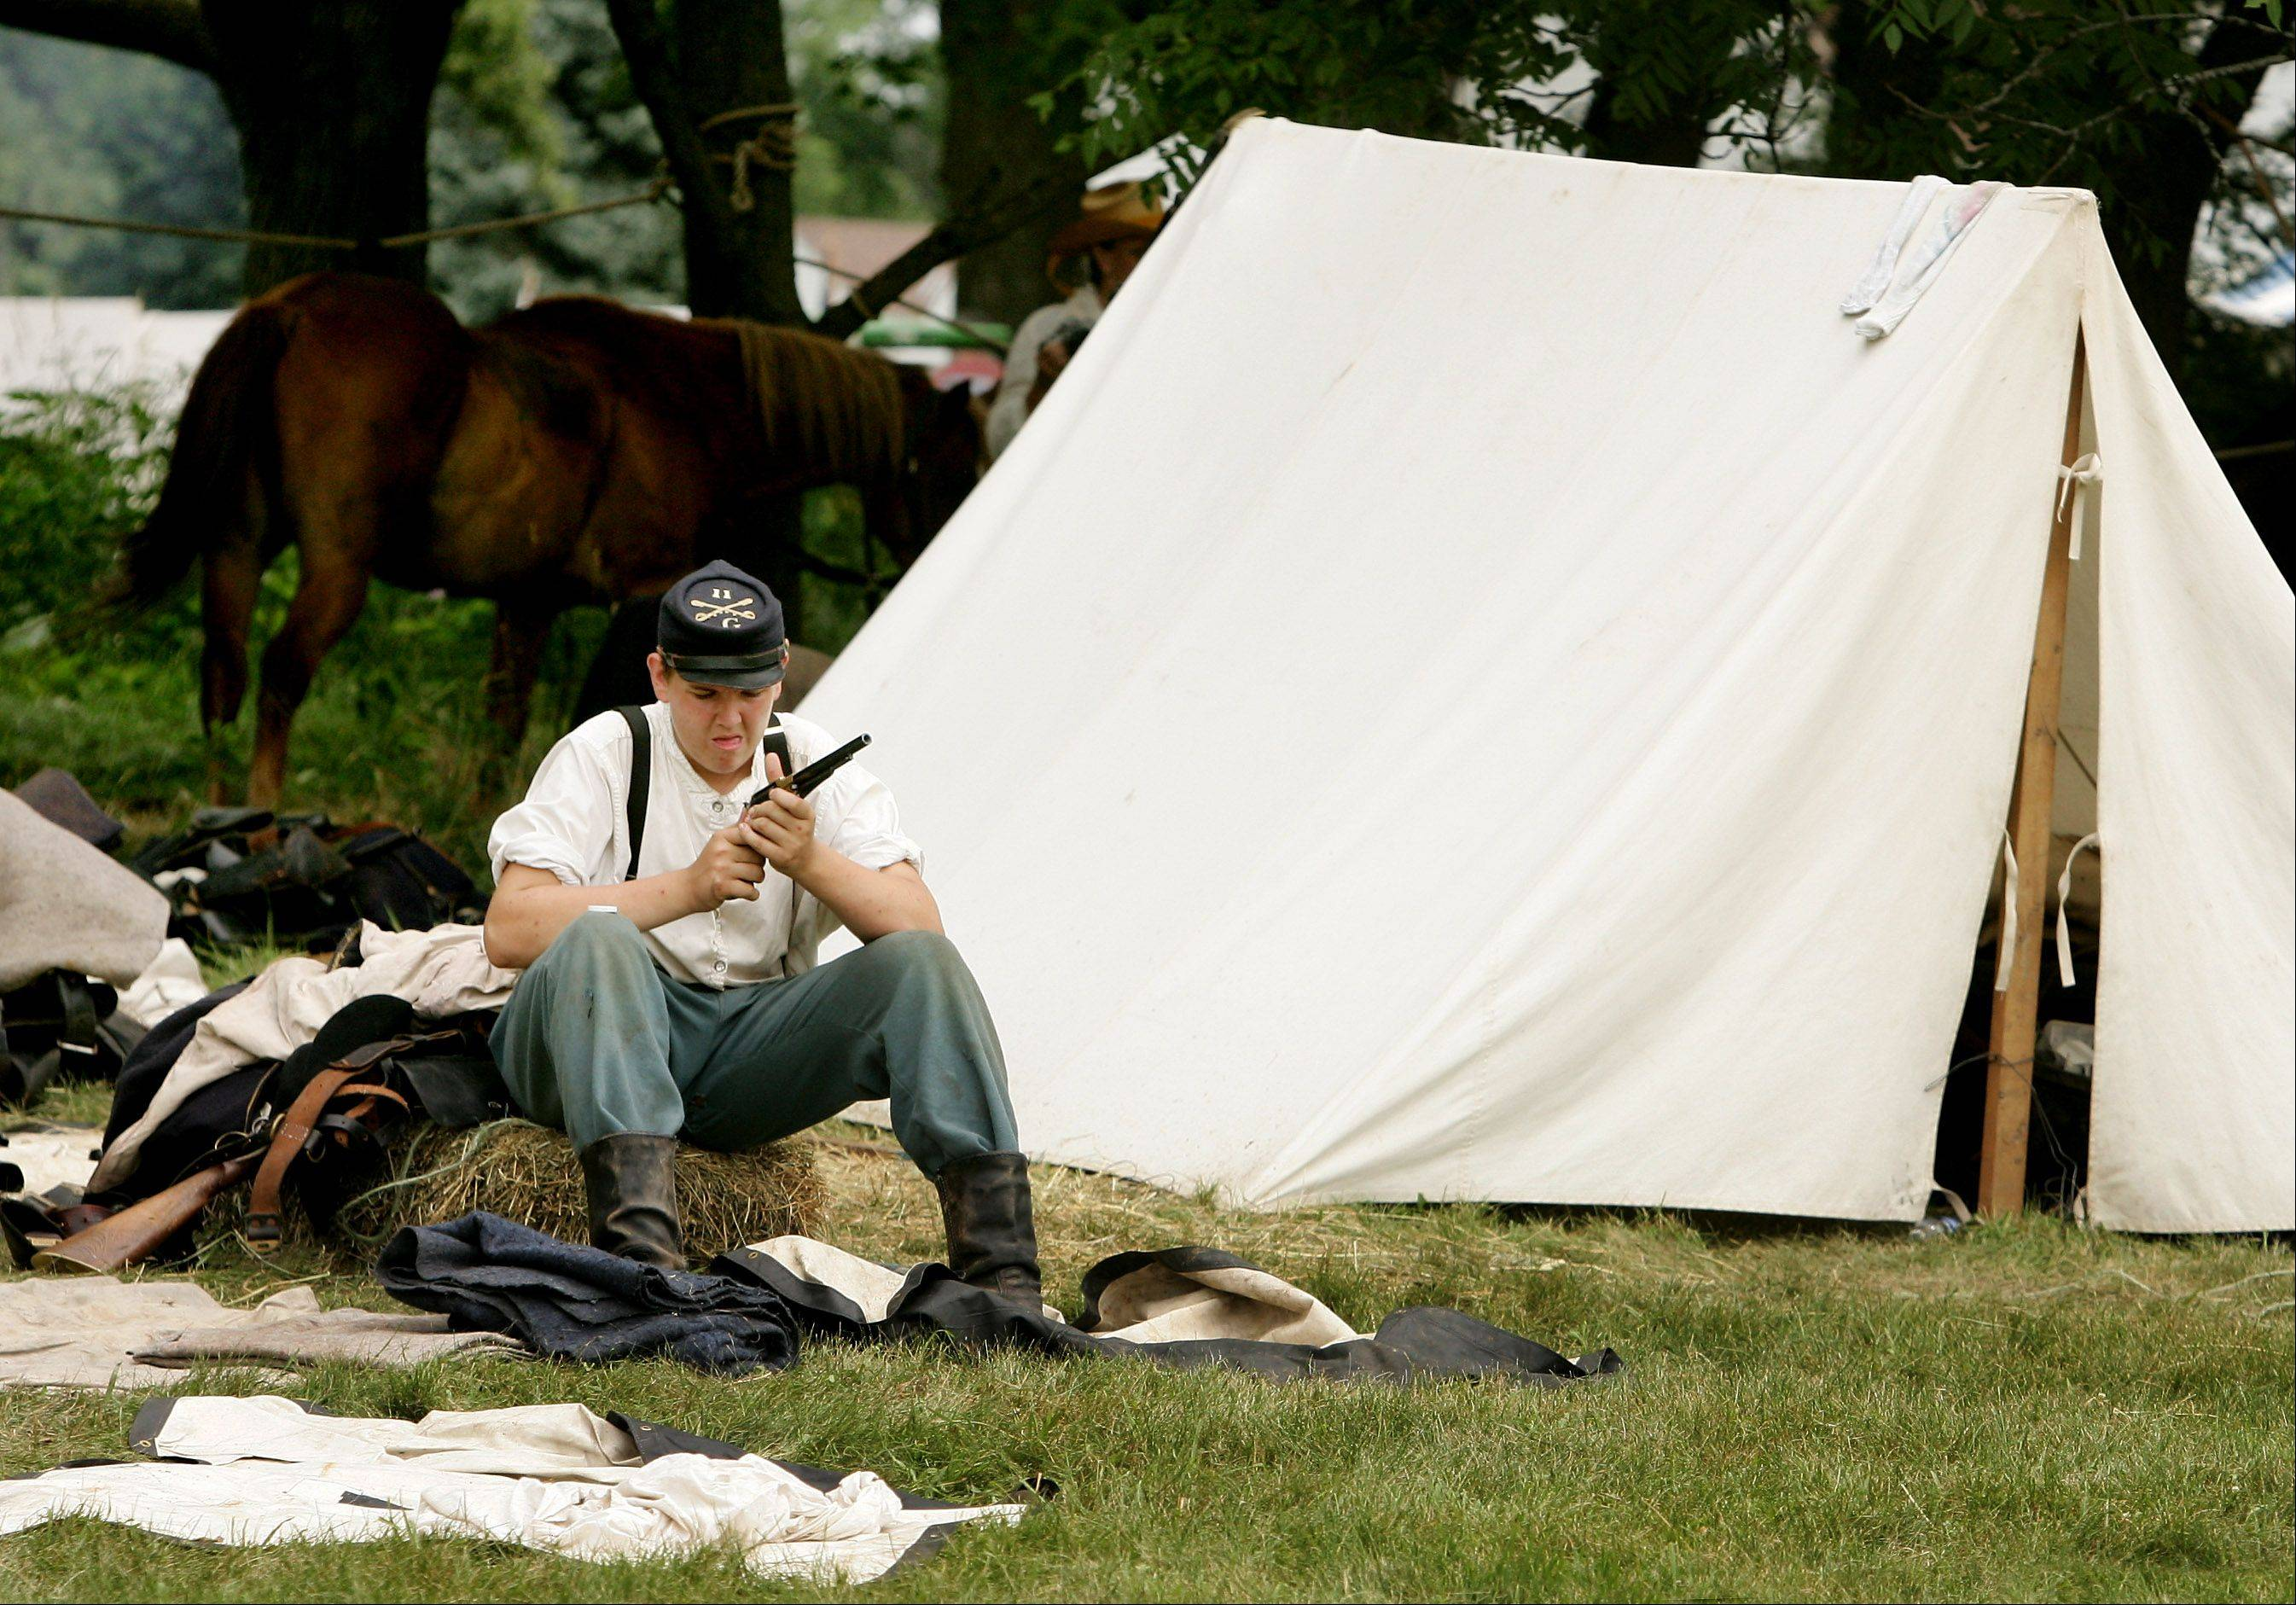 Pvt. Blake Lewis of the 11th Illinois Cavalry cleans his pistol before the afternoon battle against the Confederates during Civil War Days at Lakewood Forest Preserve near Wauconda.